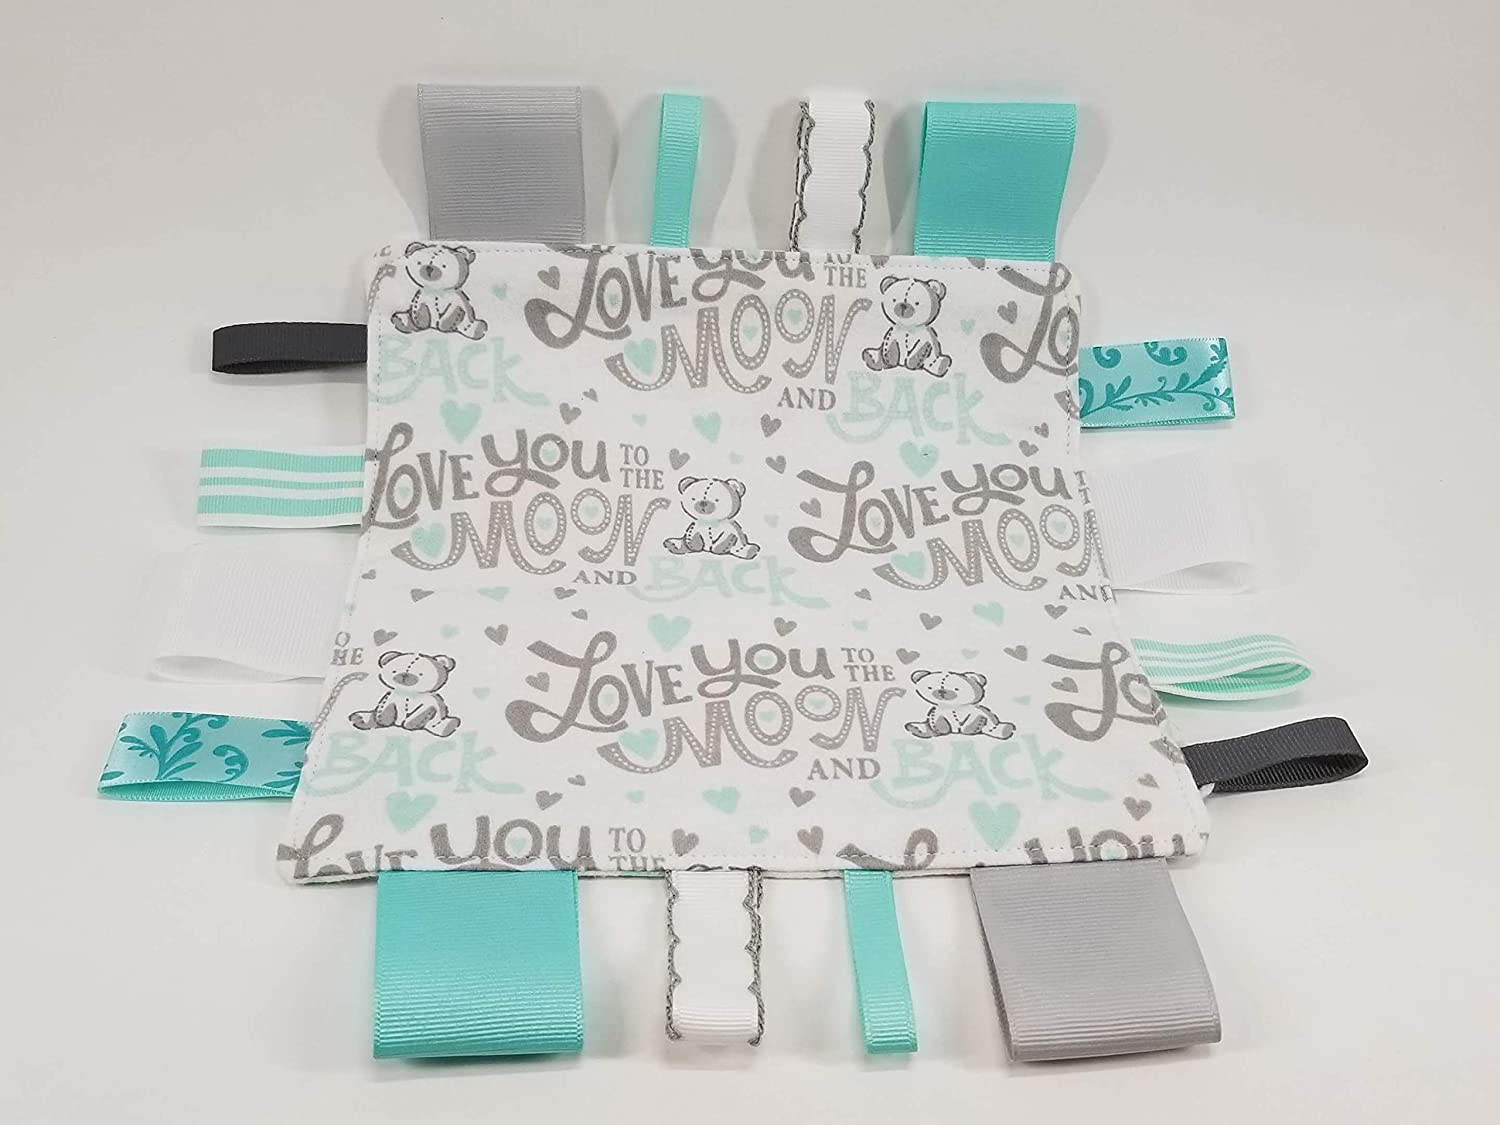 I love you to the moon and back Tag and Crinkle Square